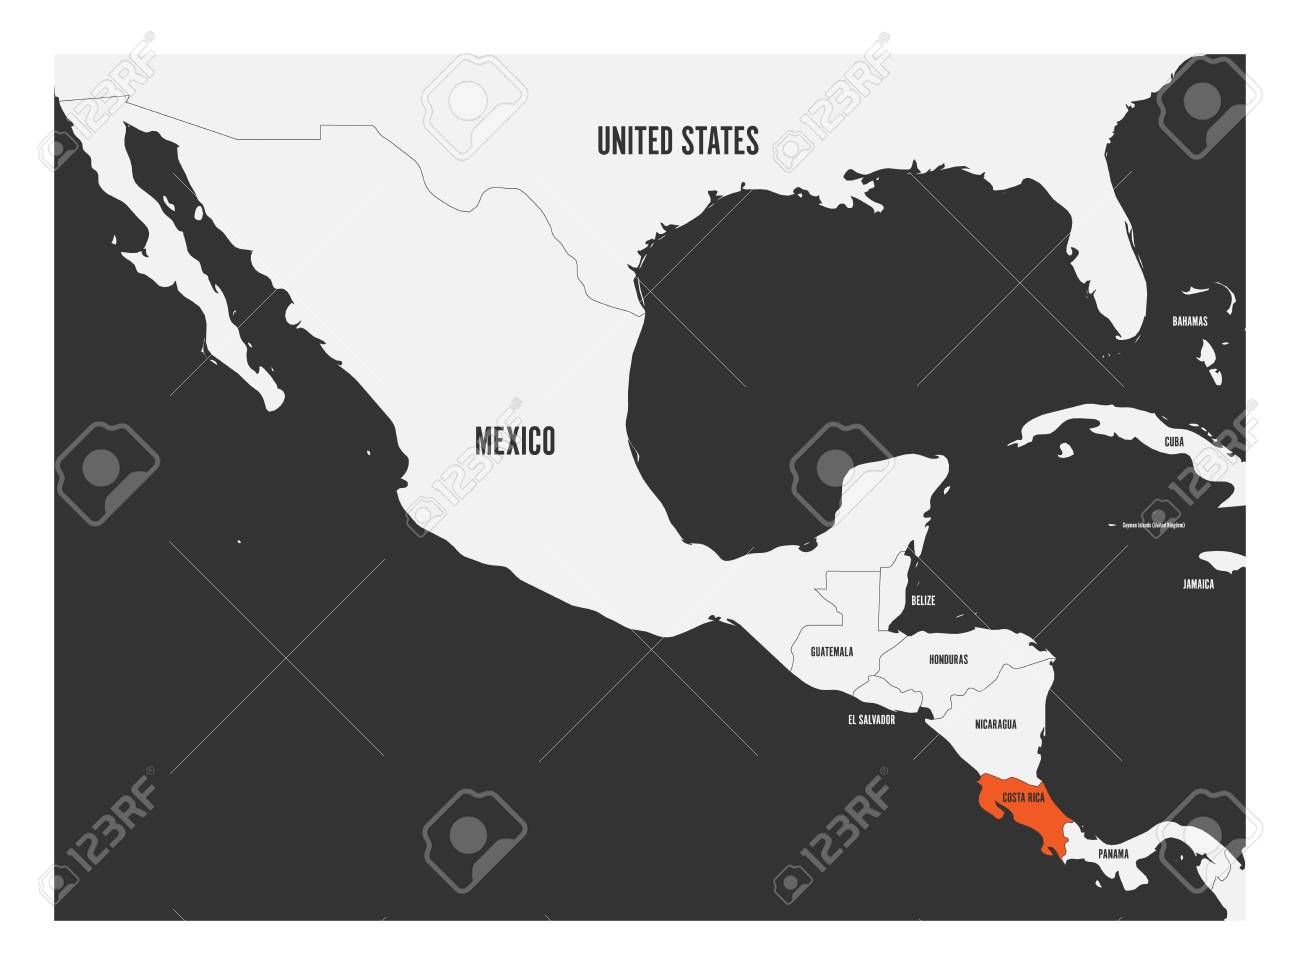 Costa Rica Orange Marked In Political Map Of Central America